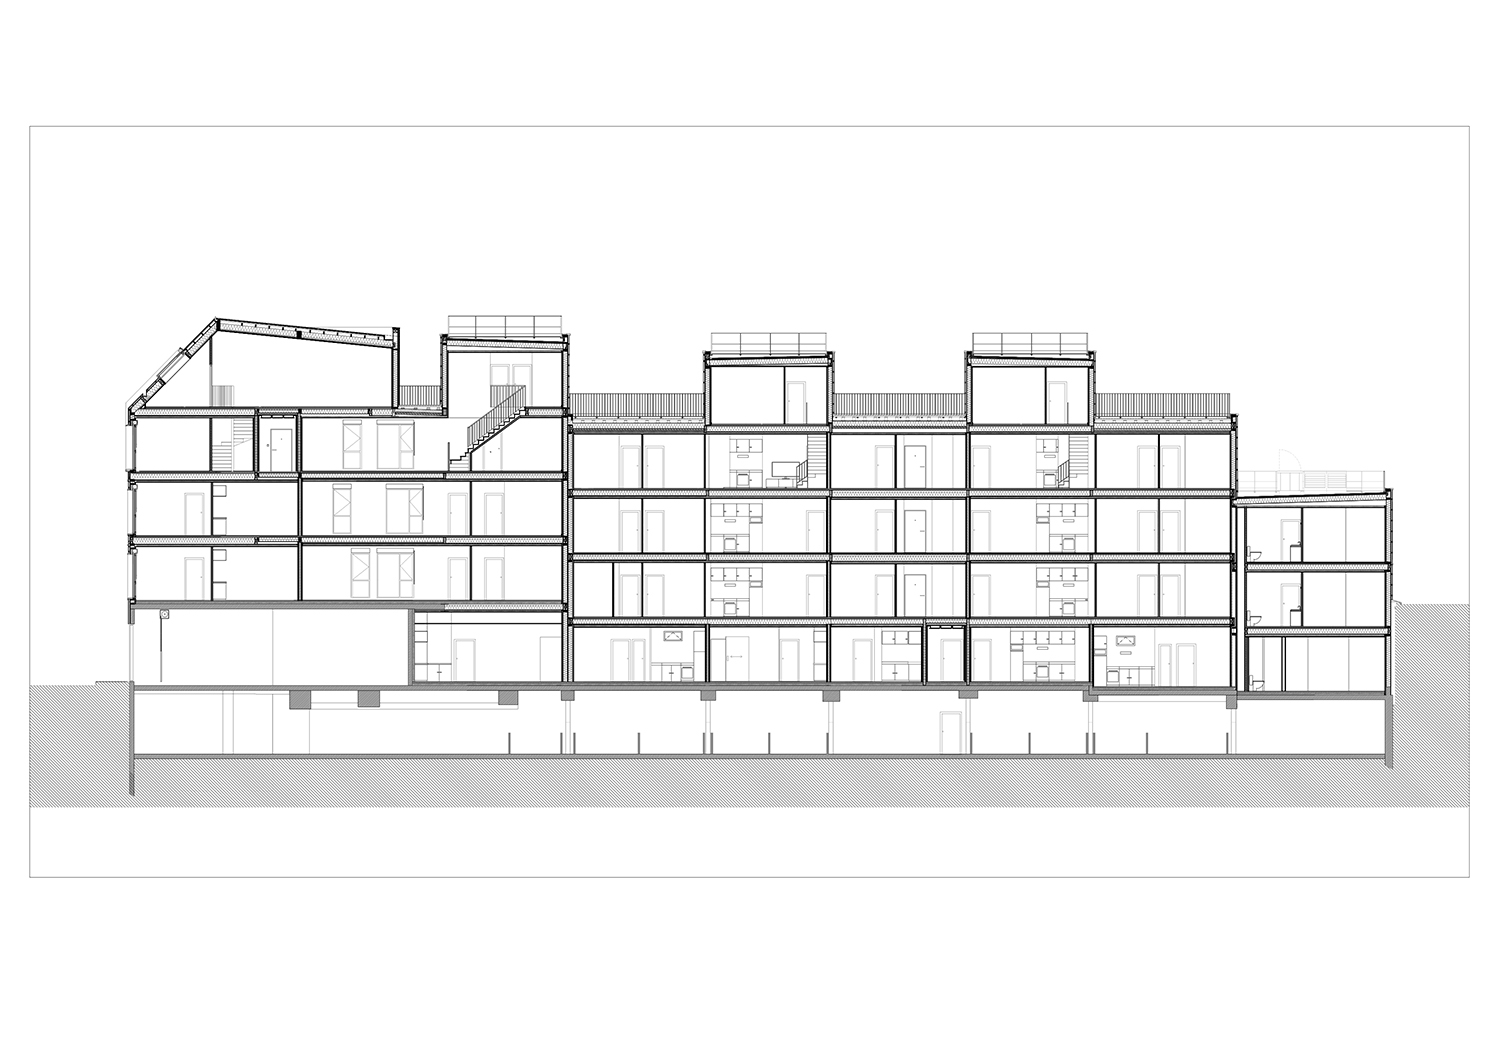 Section archi5}